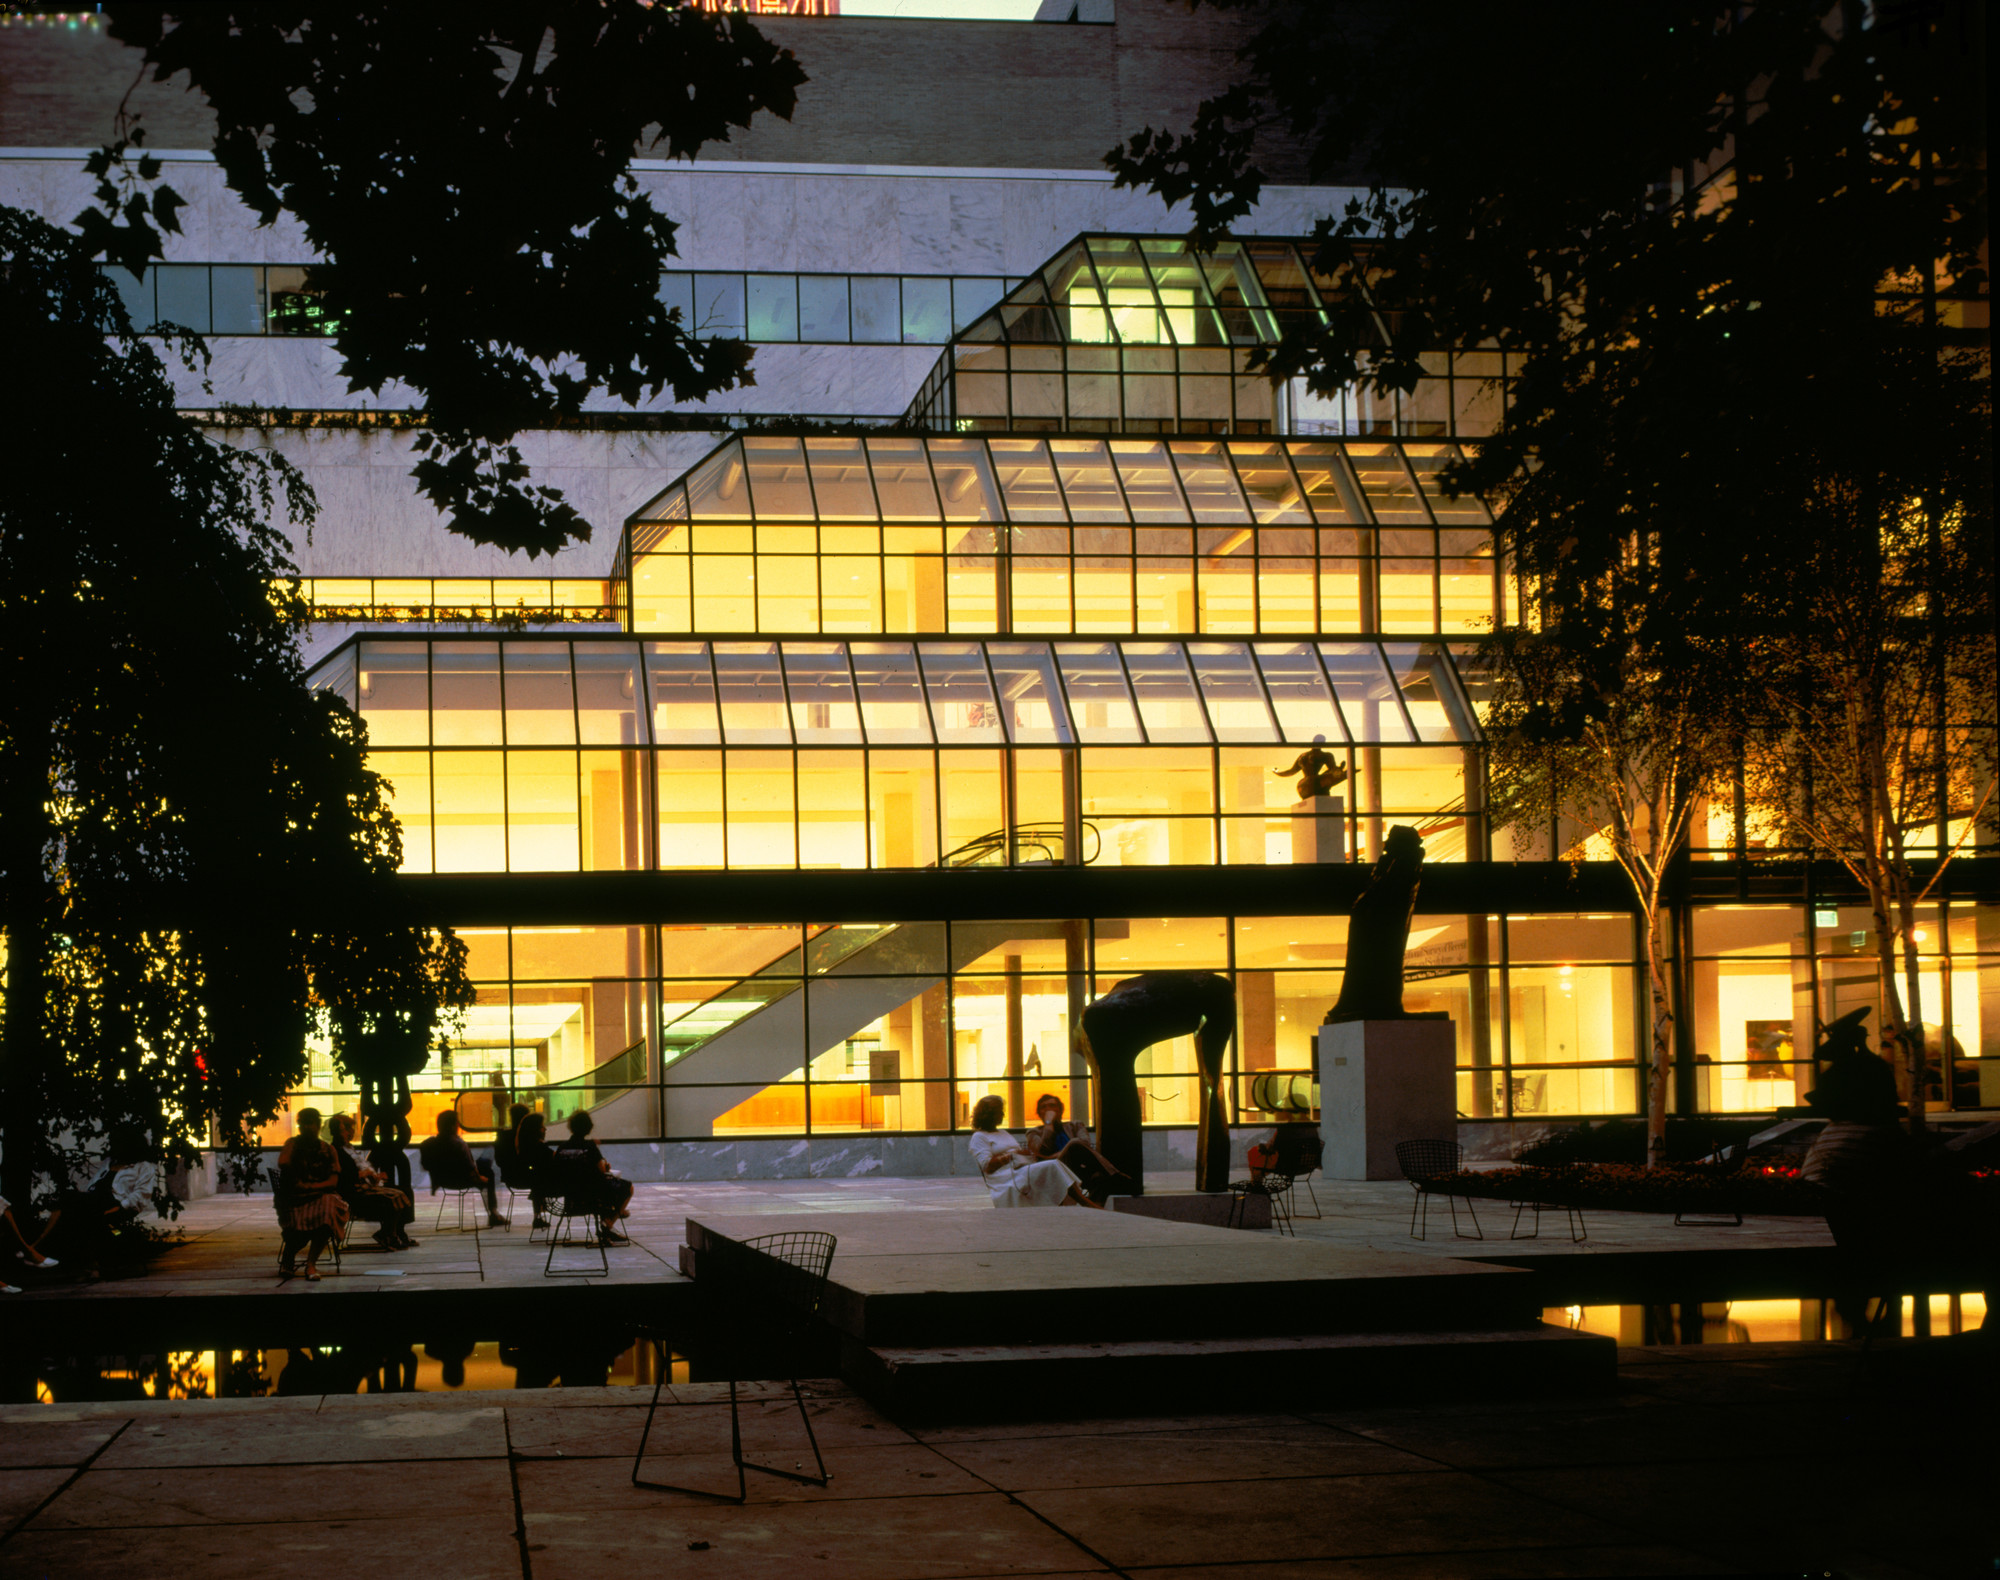 Nighttime view of the Garden Hall, 1987